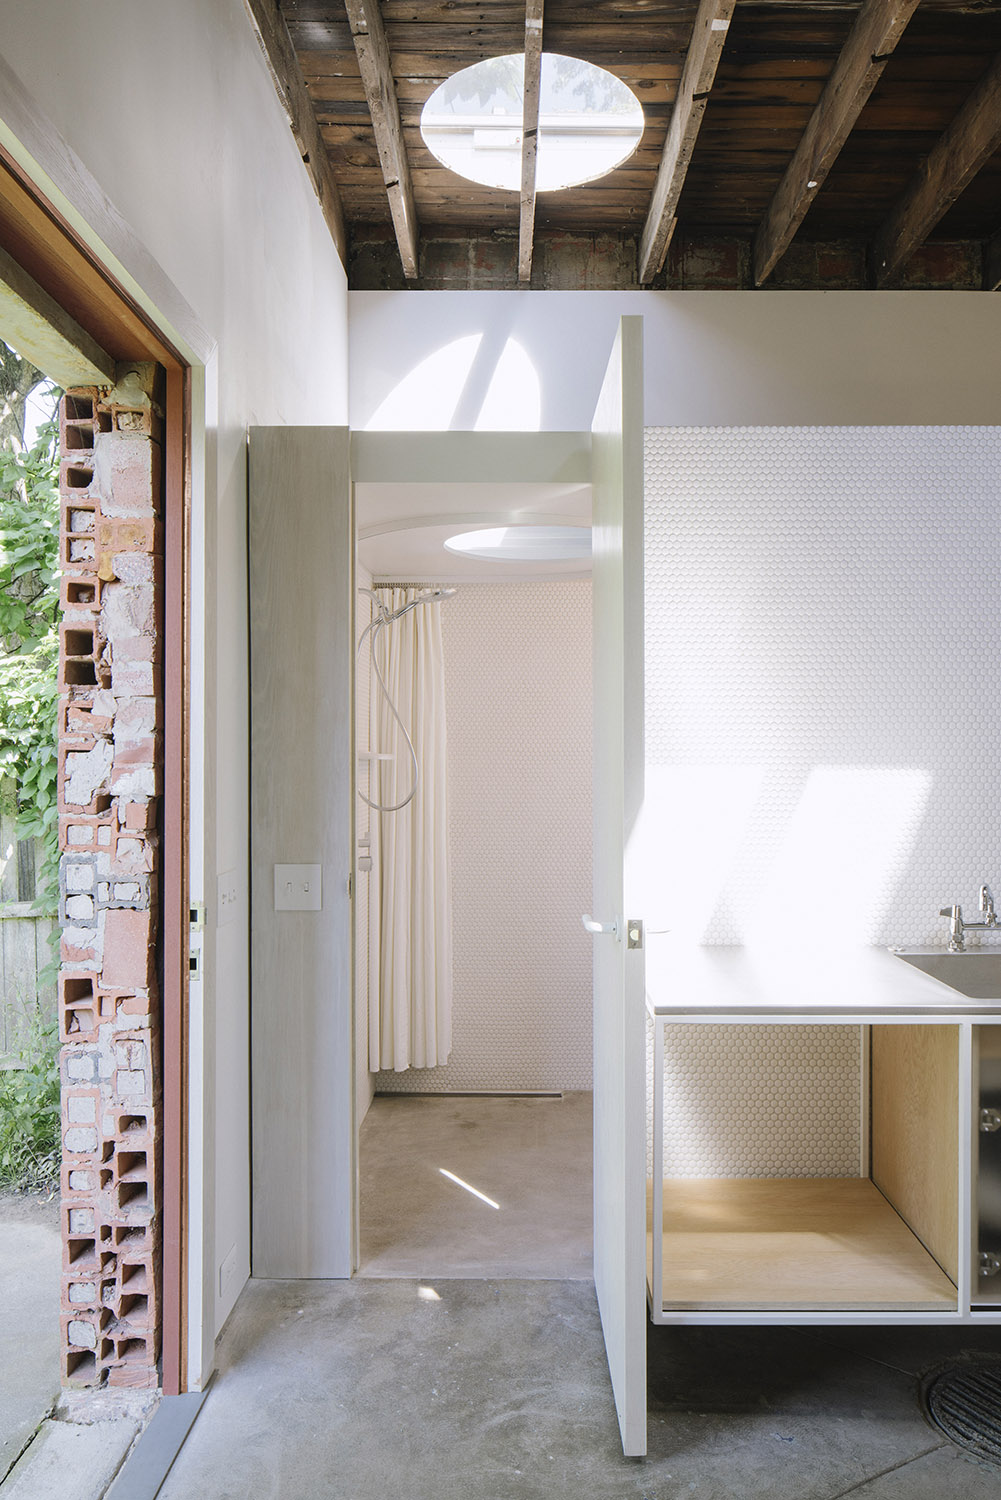 Photograph showing the entry to the bathroom, bathed in natural light from a skylight directly aligned over the shower area. The tiny square footage of the spaces is compensated for by the generous vertica Florian Holzherr